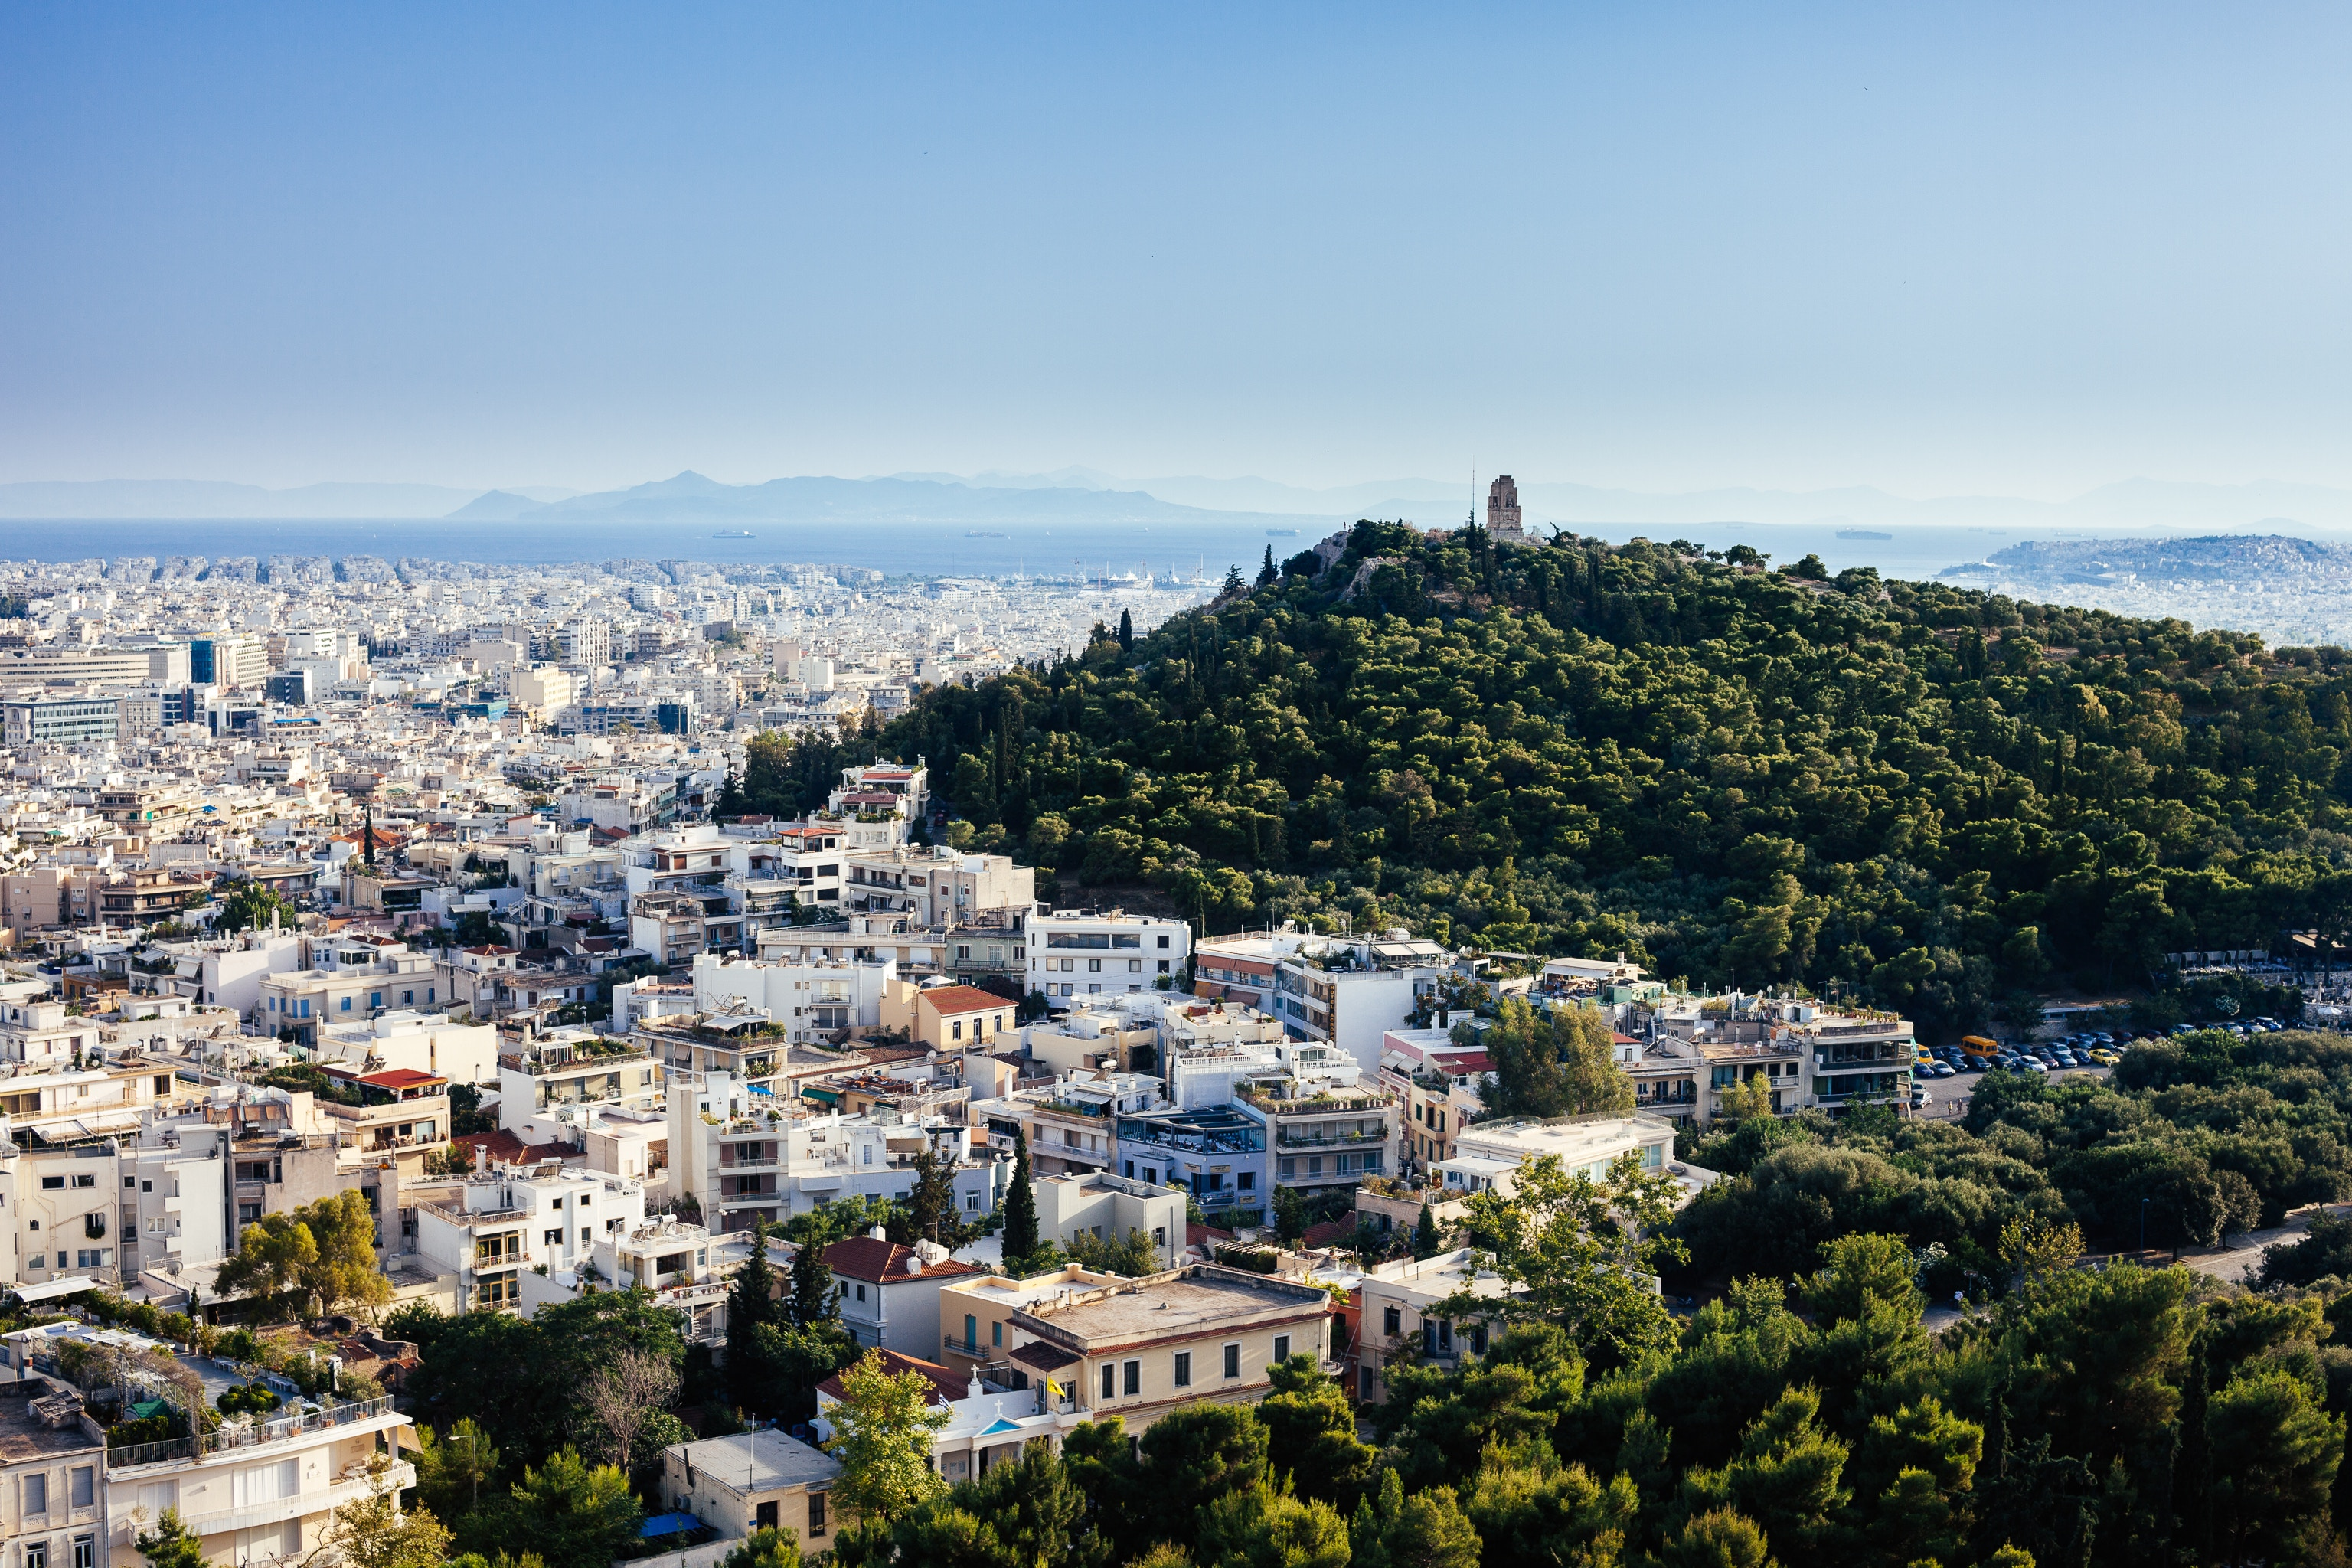 View of Athens from Lycabettus Hill in the City Center. Clear sky shows view of sea in South Athens and islands in Saronic Gulf.